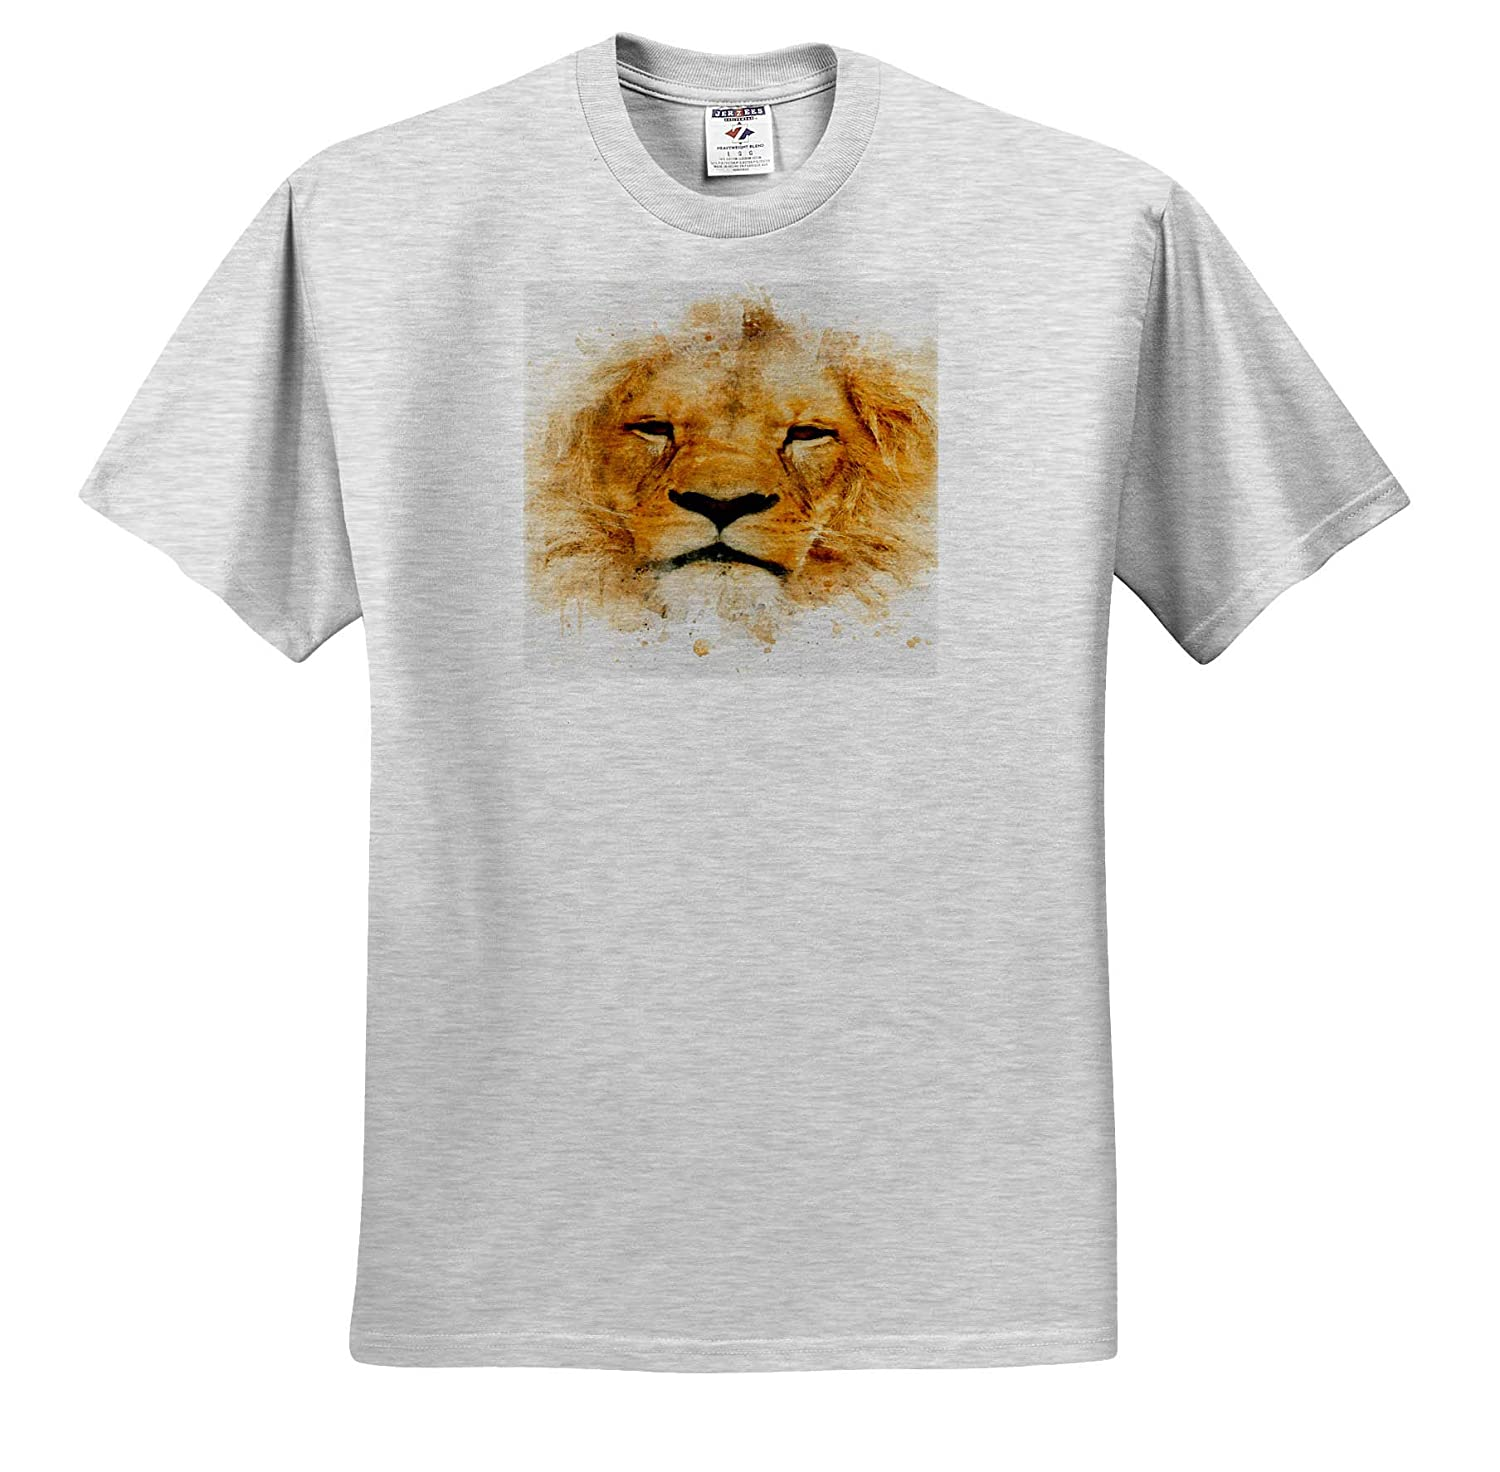 Impressionist Mixed Media Art ts/_318684 3dRose Anne Marie Baugh Image of Watercolor Lion Face Art Adult T-Shirt XL